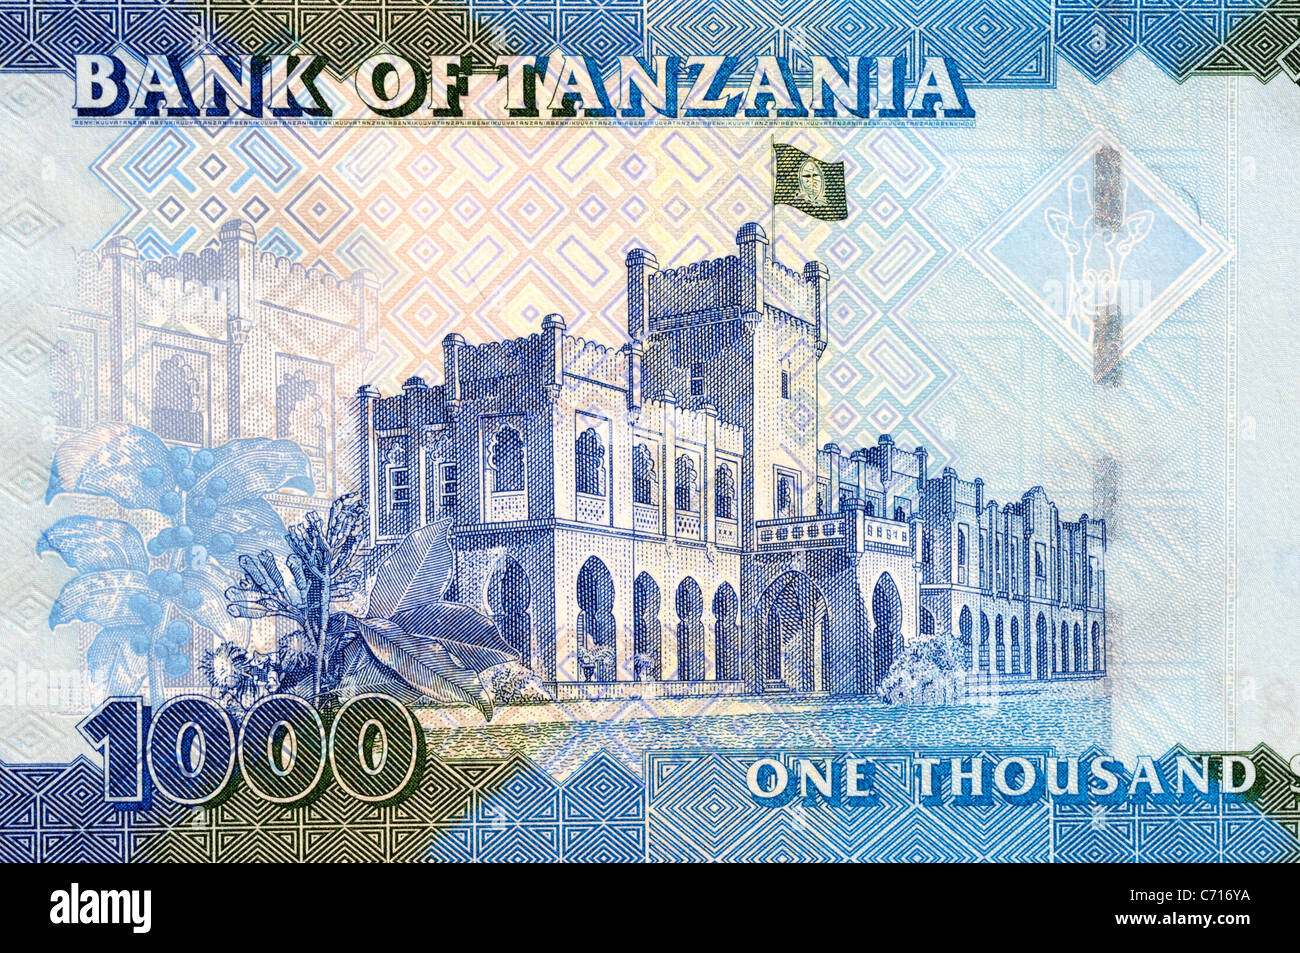 Tanzania 1000 One Thousand Shilling Bank Note. Stock Photo